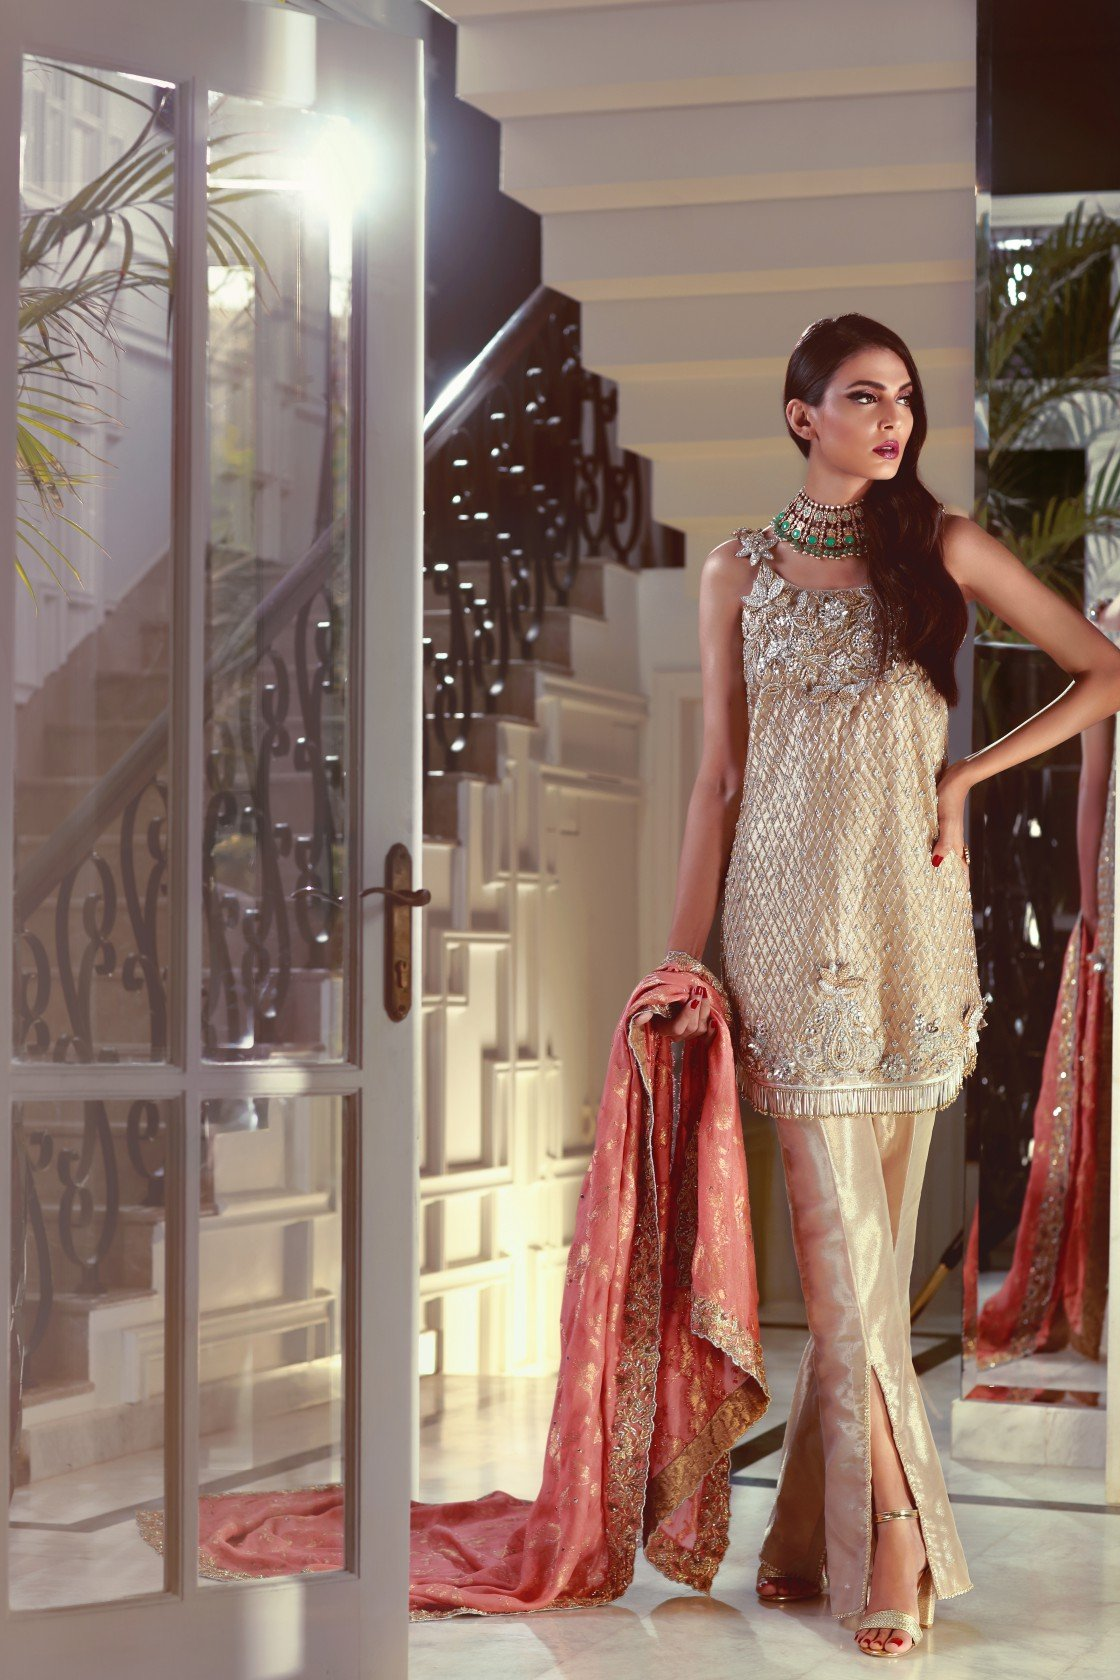 Maheen Karim - Dull Gold Spaghetti Strapped Tunic With Pants & Dupatta